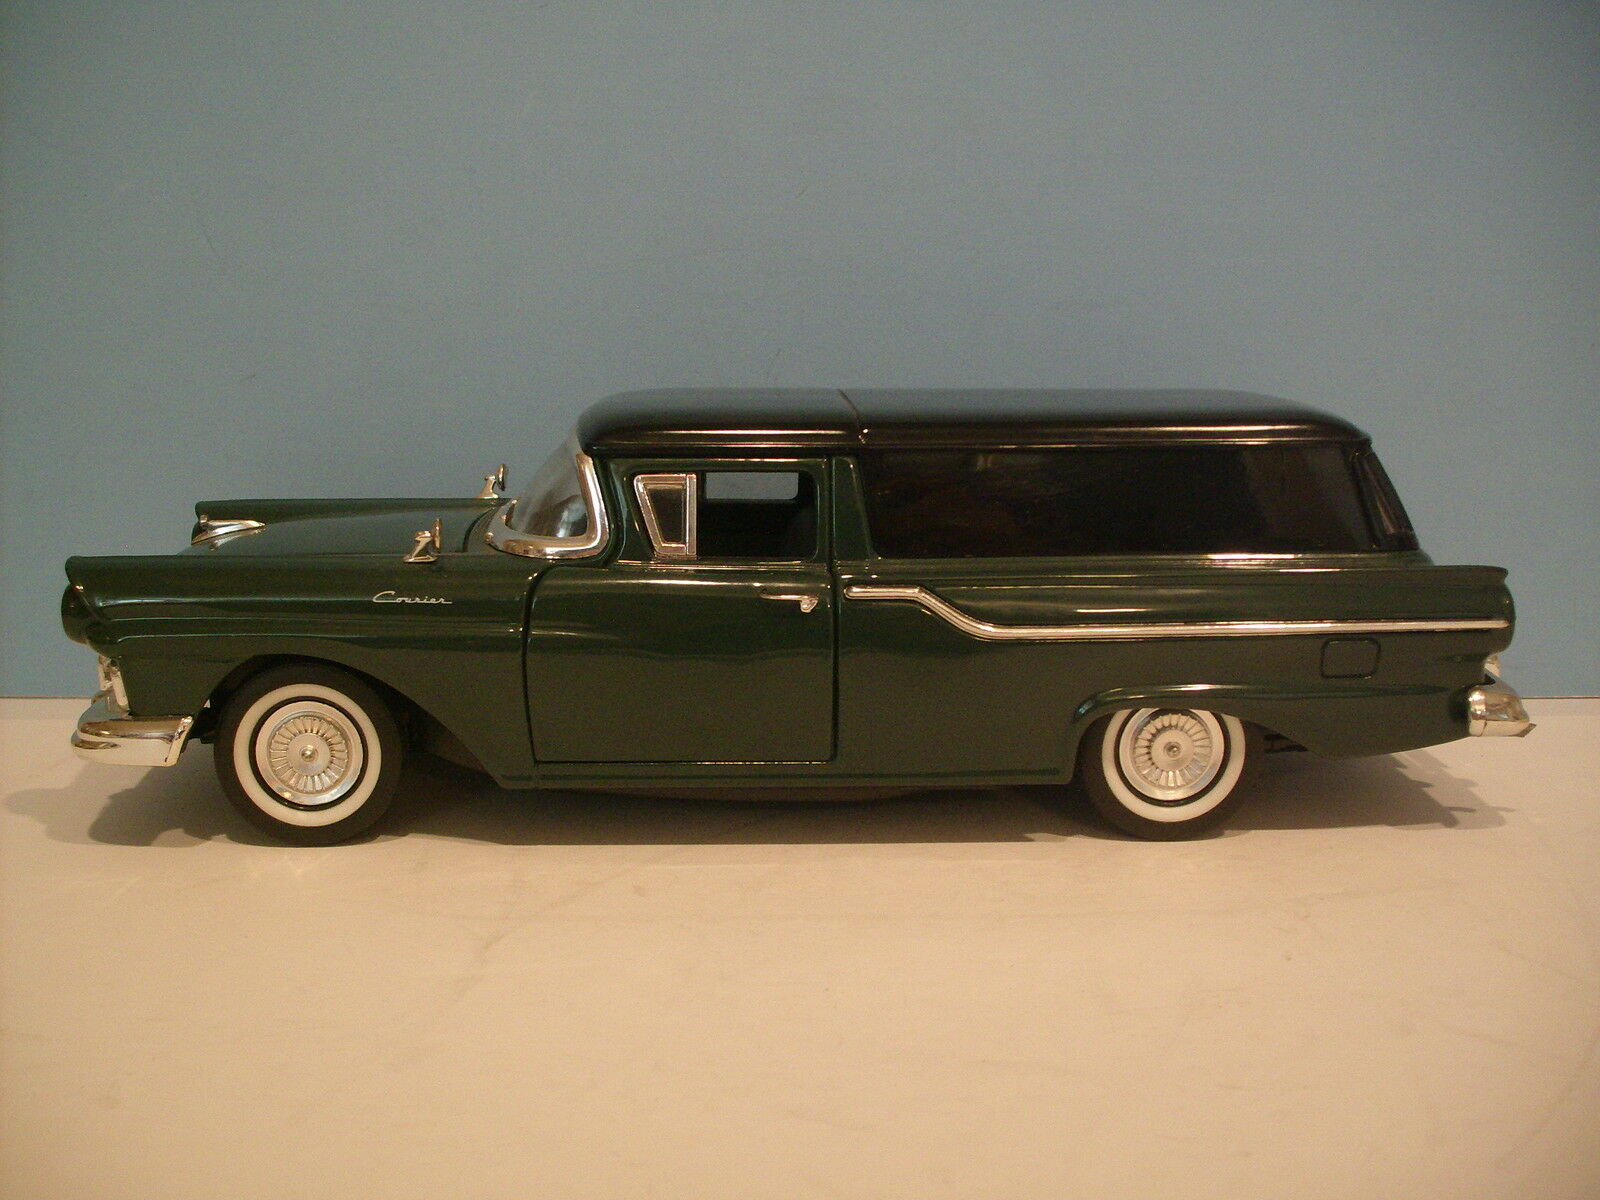 1 18 Road Signature Green 1957 Ford Ranchero Courier Sedan Die-cast By Yat Ming